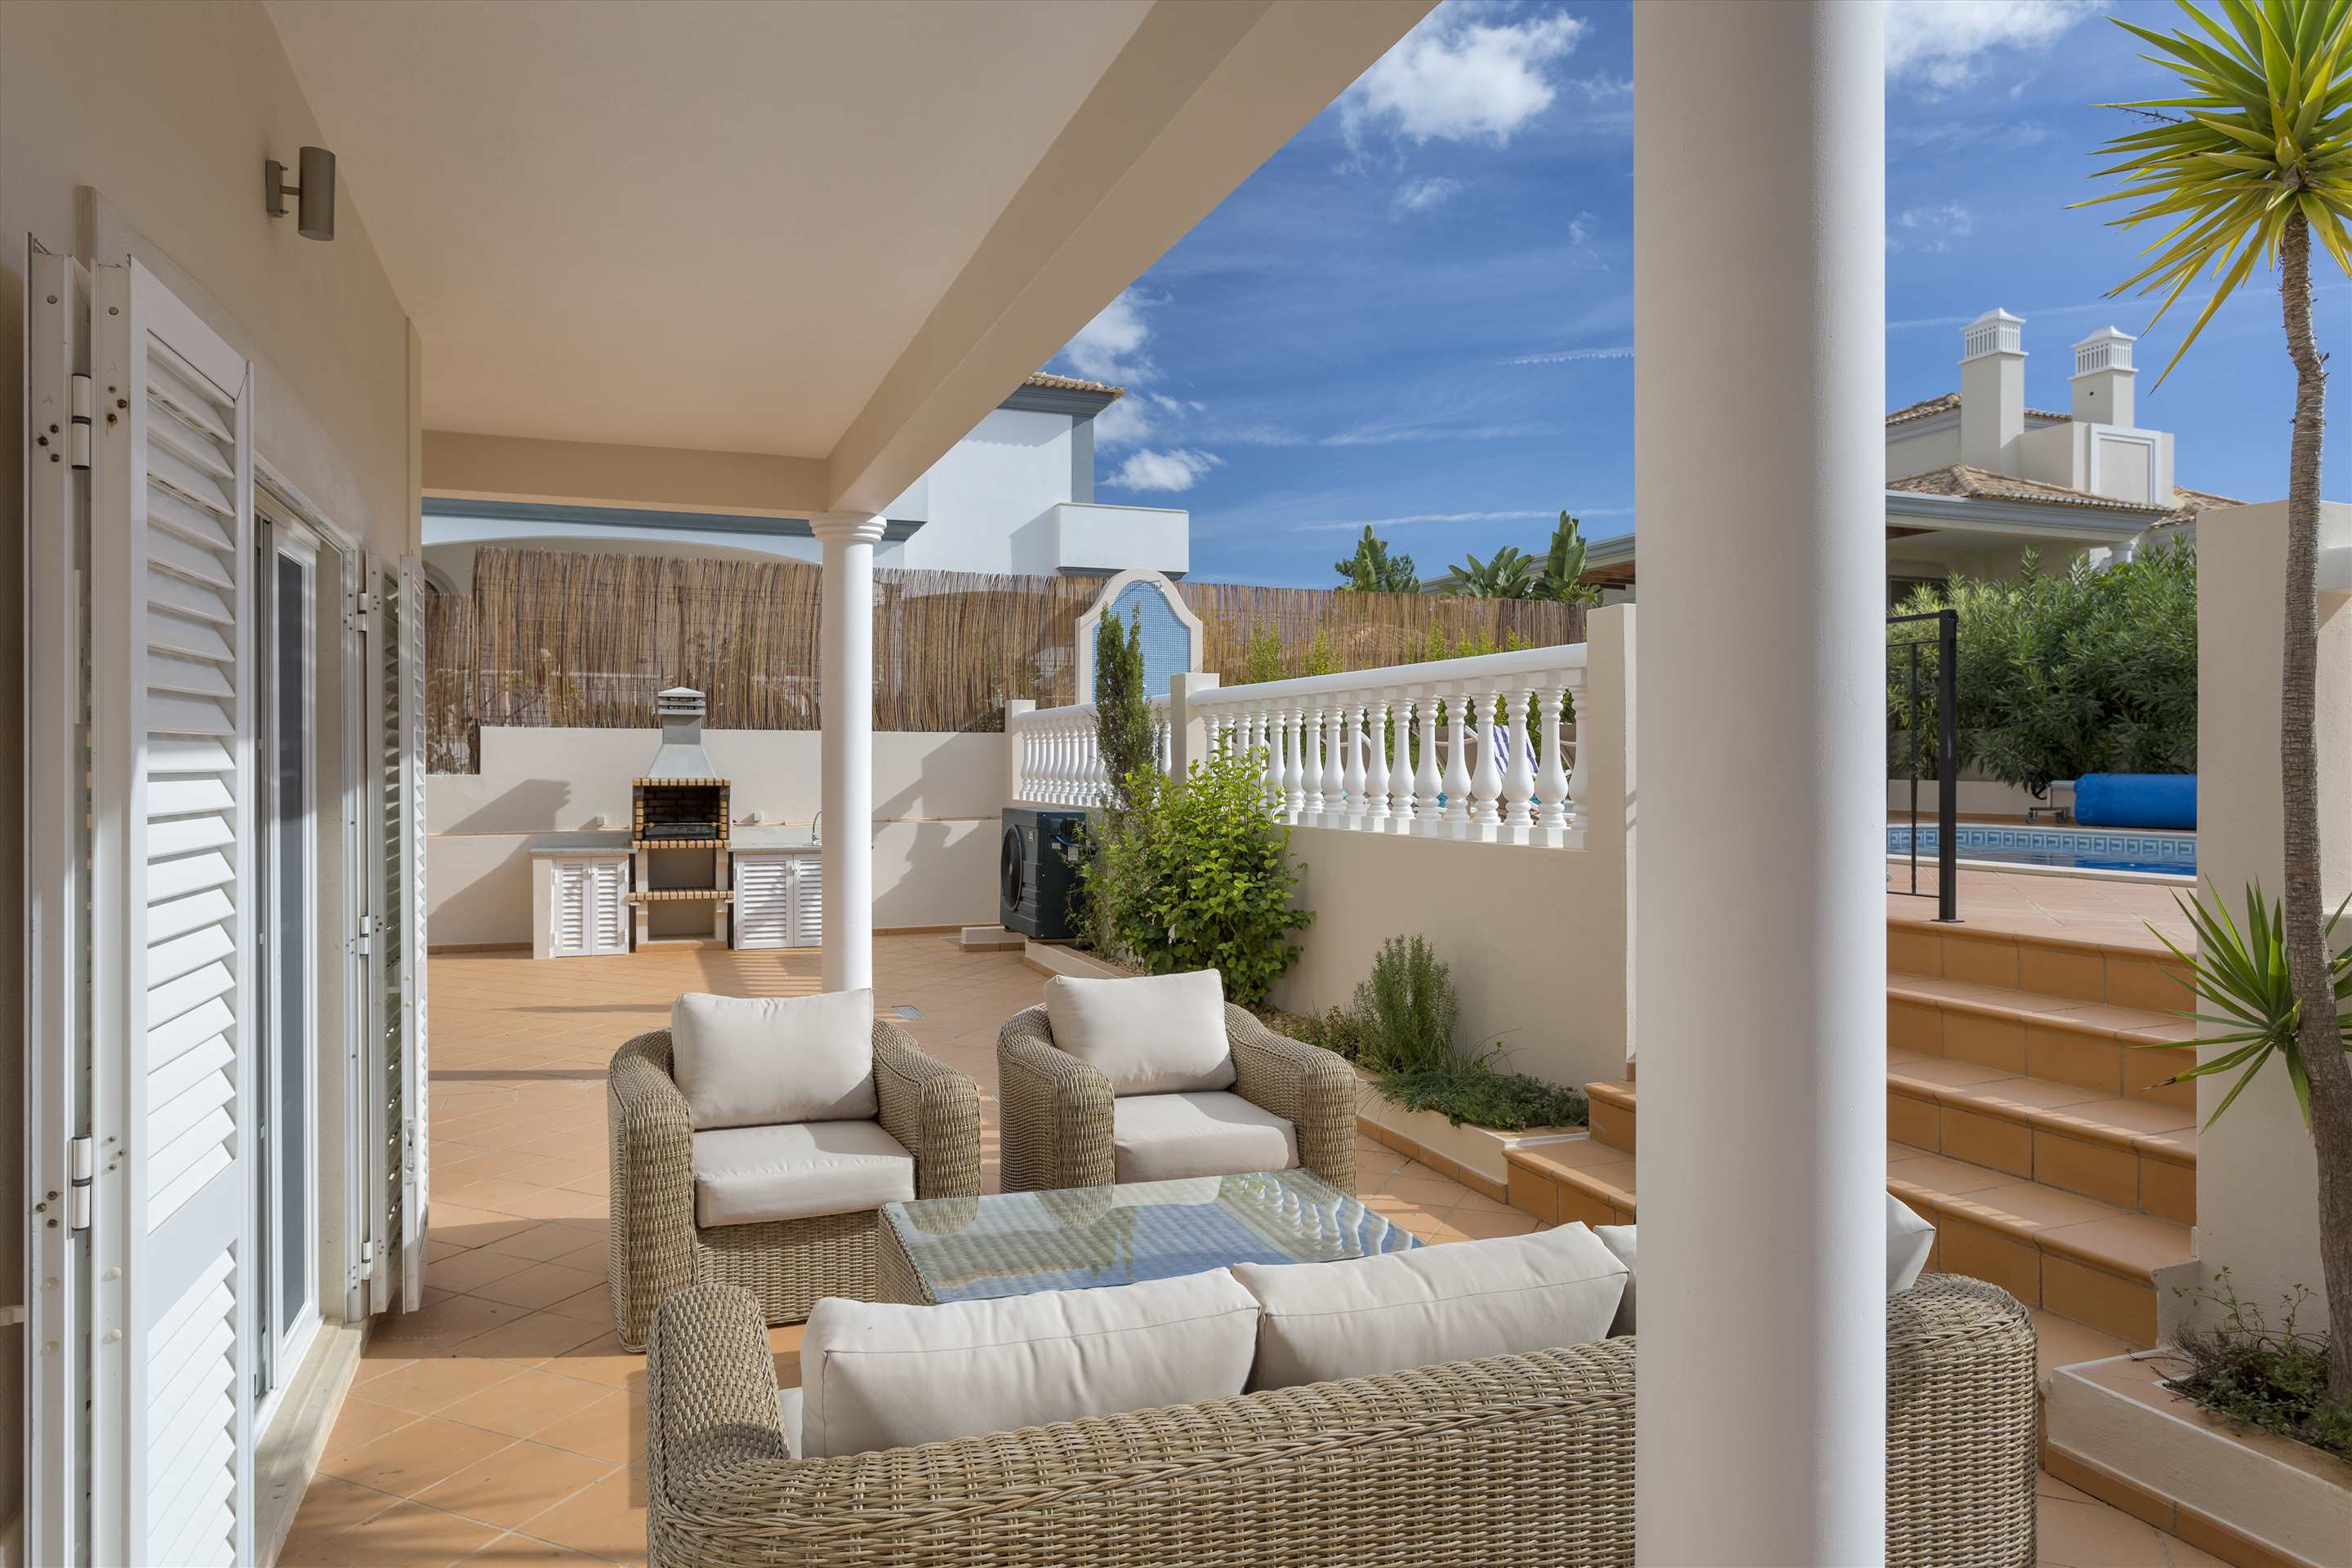 Villa Diana, 4 bedroom villa in Vale do Lobo, Algarve Photo #2